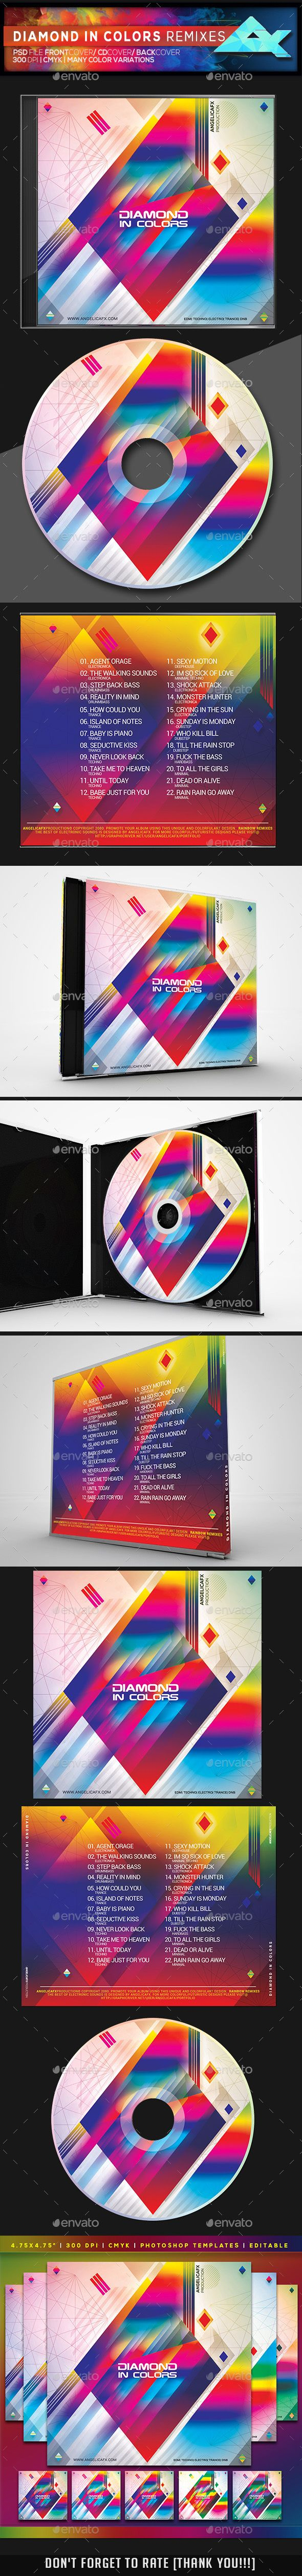 diamond in colors cd dvd photoshop template psd cd dvd cover